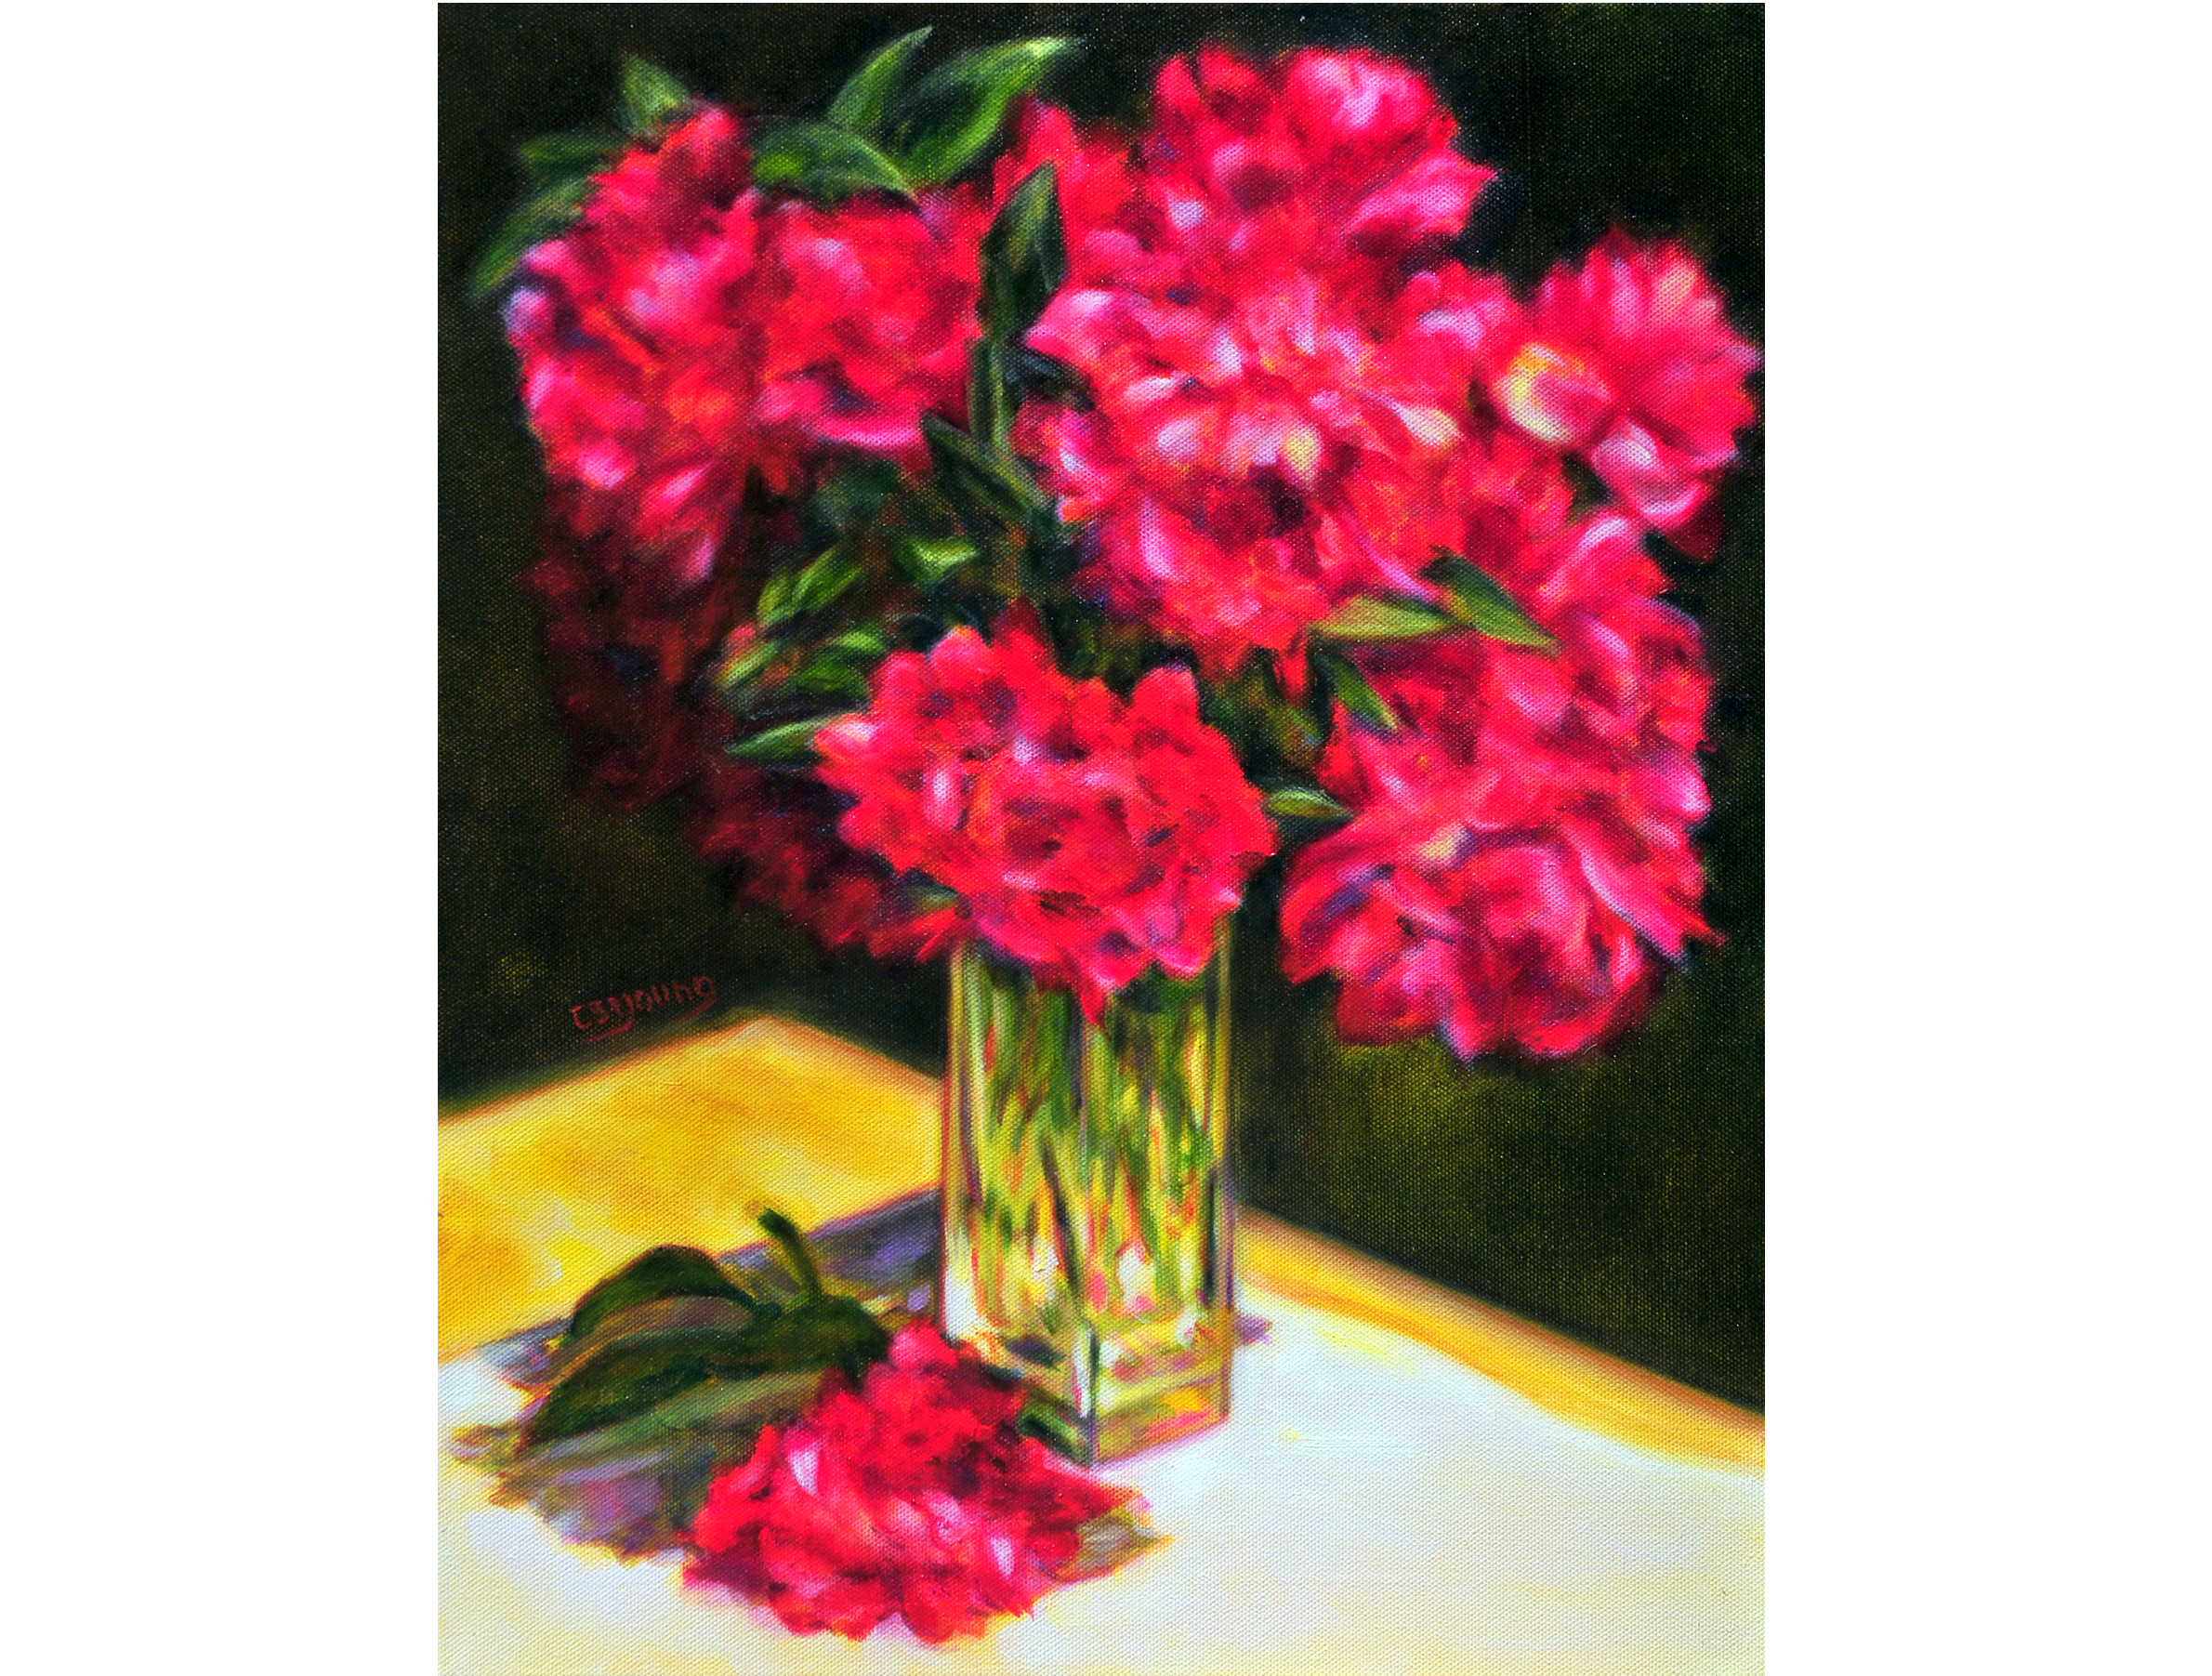 Caroline Young_painter_realism_florals_game boards_representaional art_oils_pastels_NC artist_flowers_landscapes_award winner